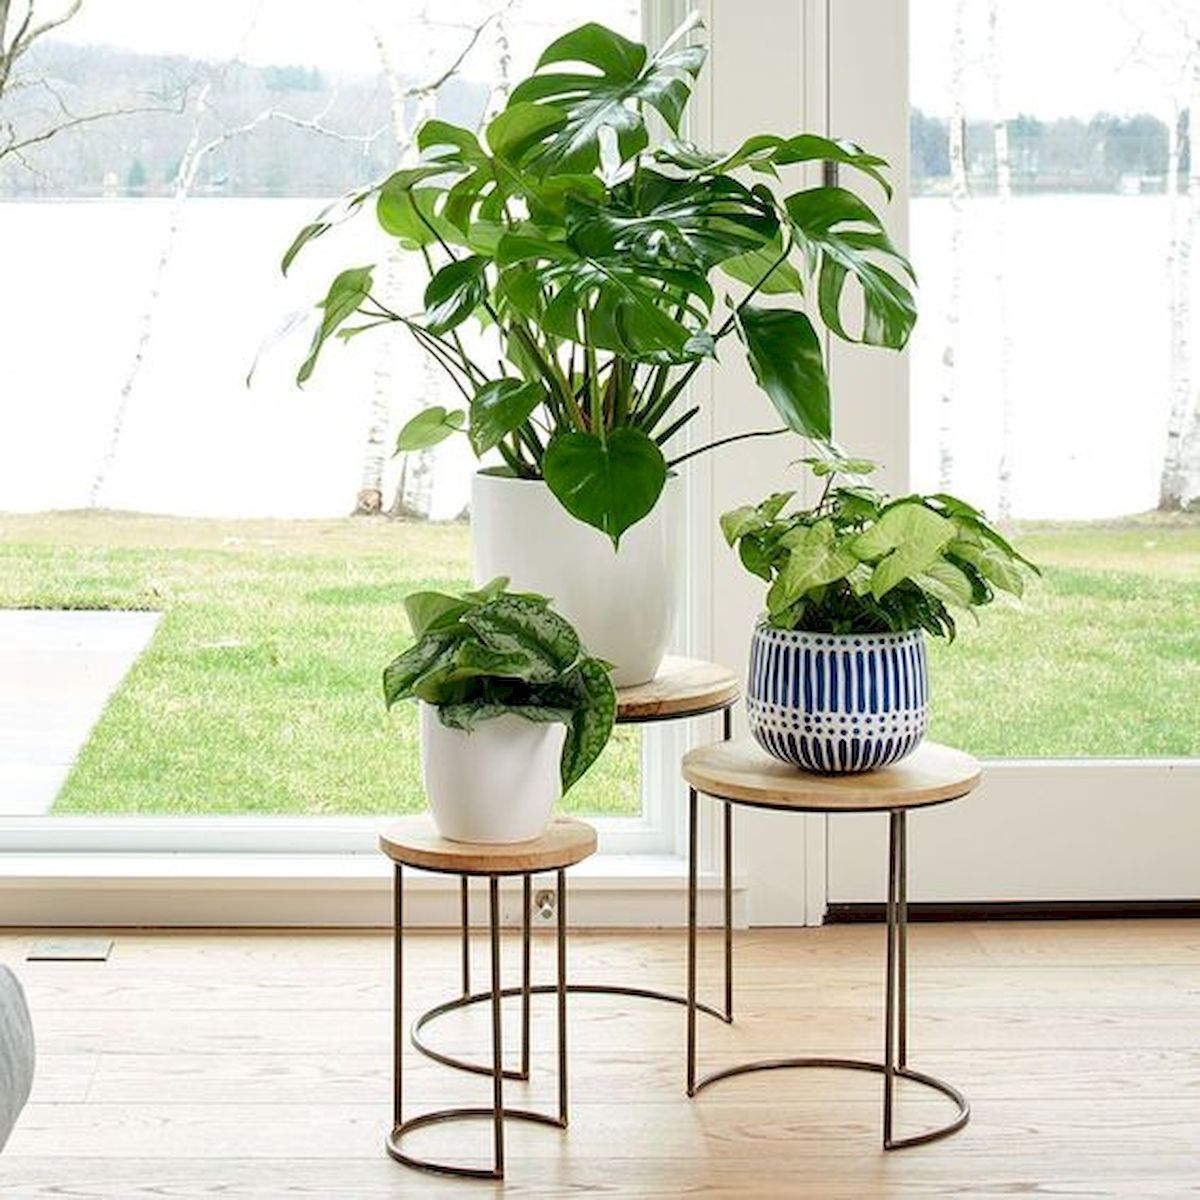 50 Best Indoor Garden For Apartment Design Ideas And ... on Hanging Plants Stand Design  id=31209